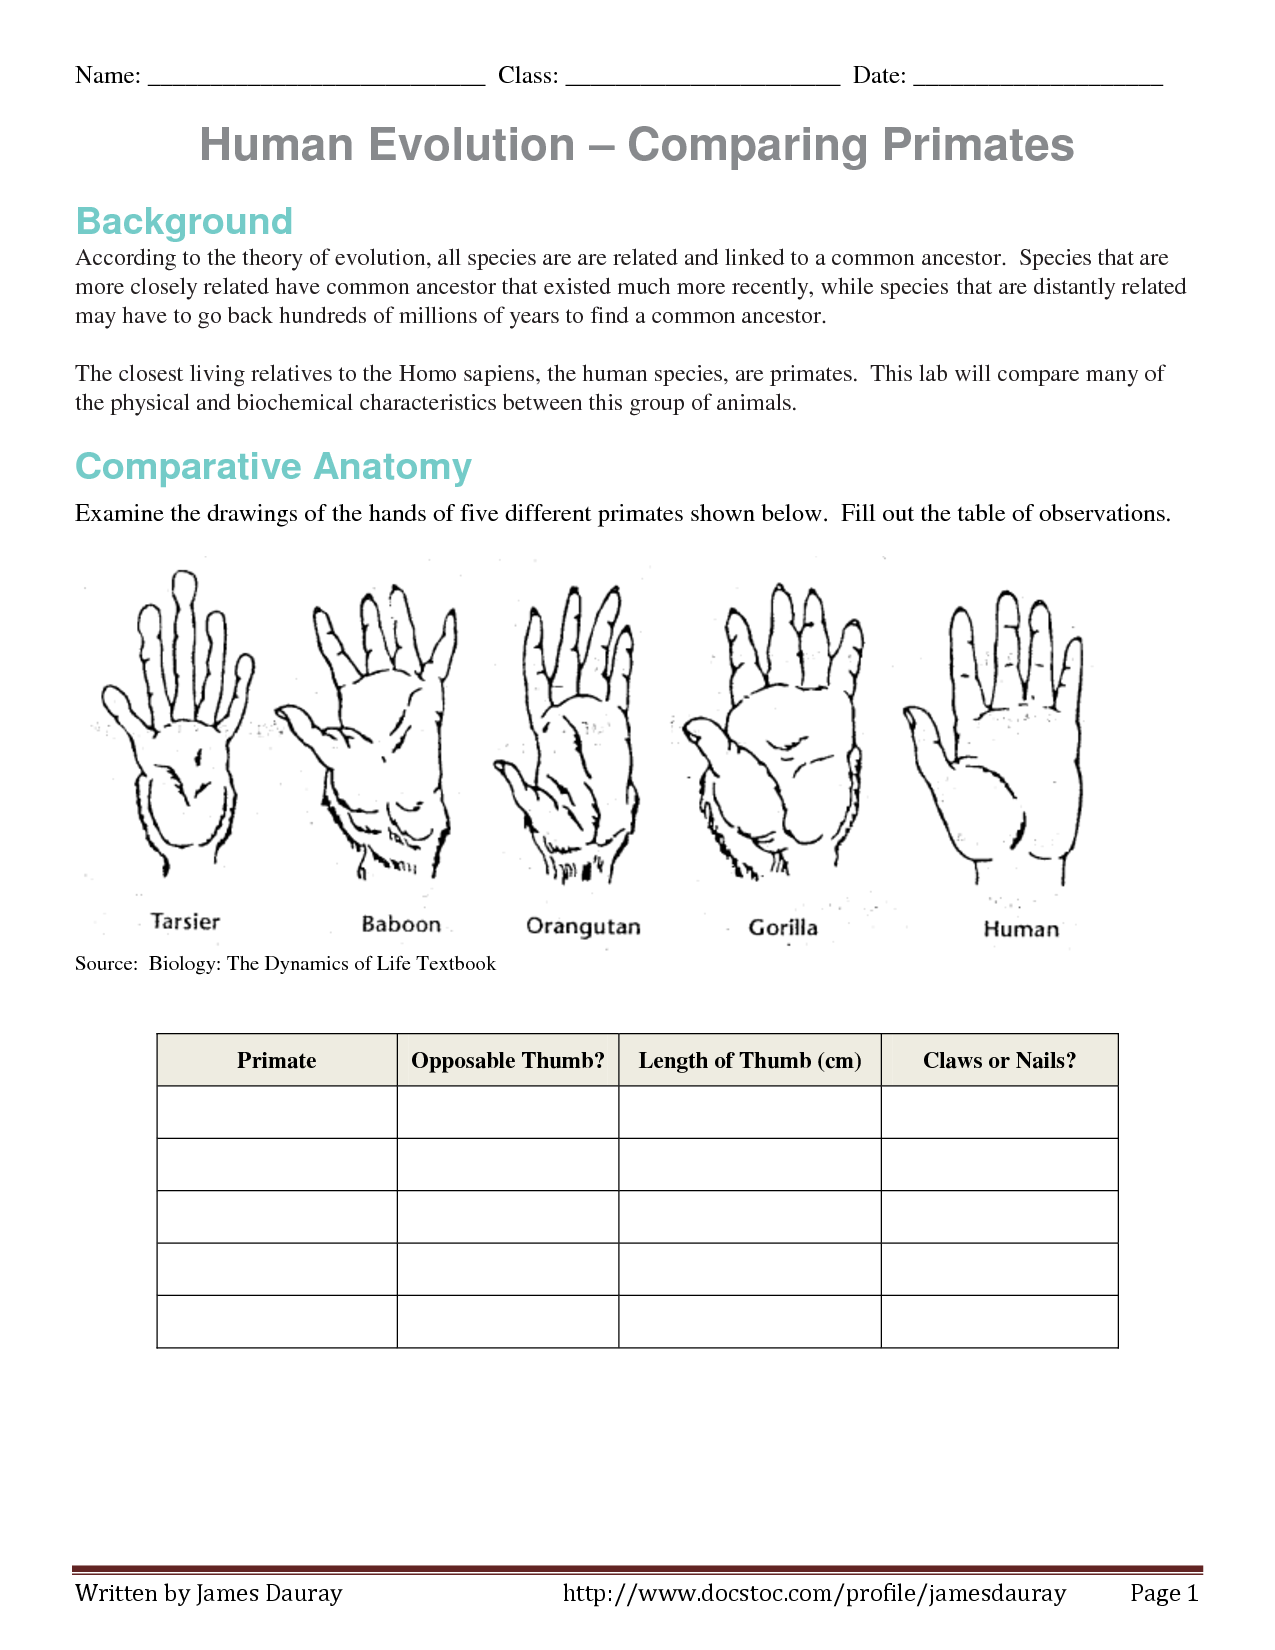 evolution of human thumb evidence of human evolution worksheet comparing primates by - Evolution Worksheet